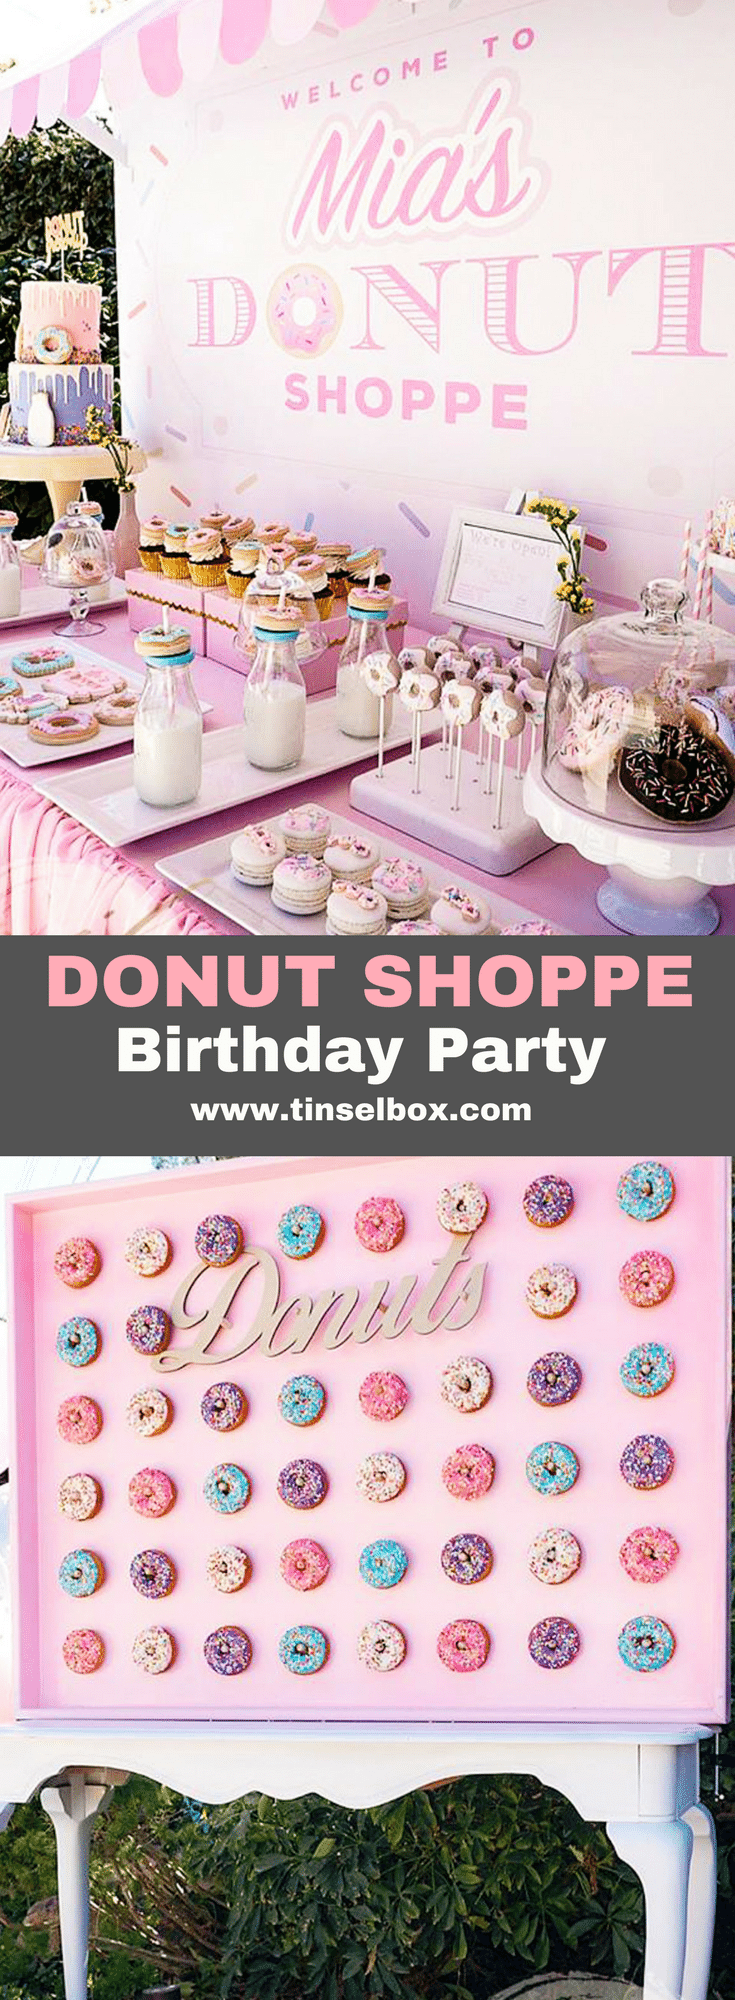 This adorable donut birthday party is filled with sprinkled treats. Find so many great inspirations from desserts to decorations. Including cake, cookies and Rice Krispys shaped like donuts. #donut #kidsparty